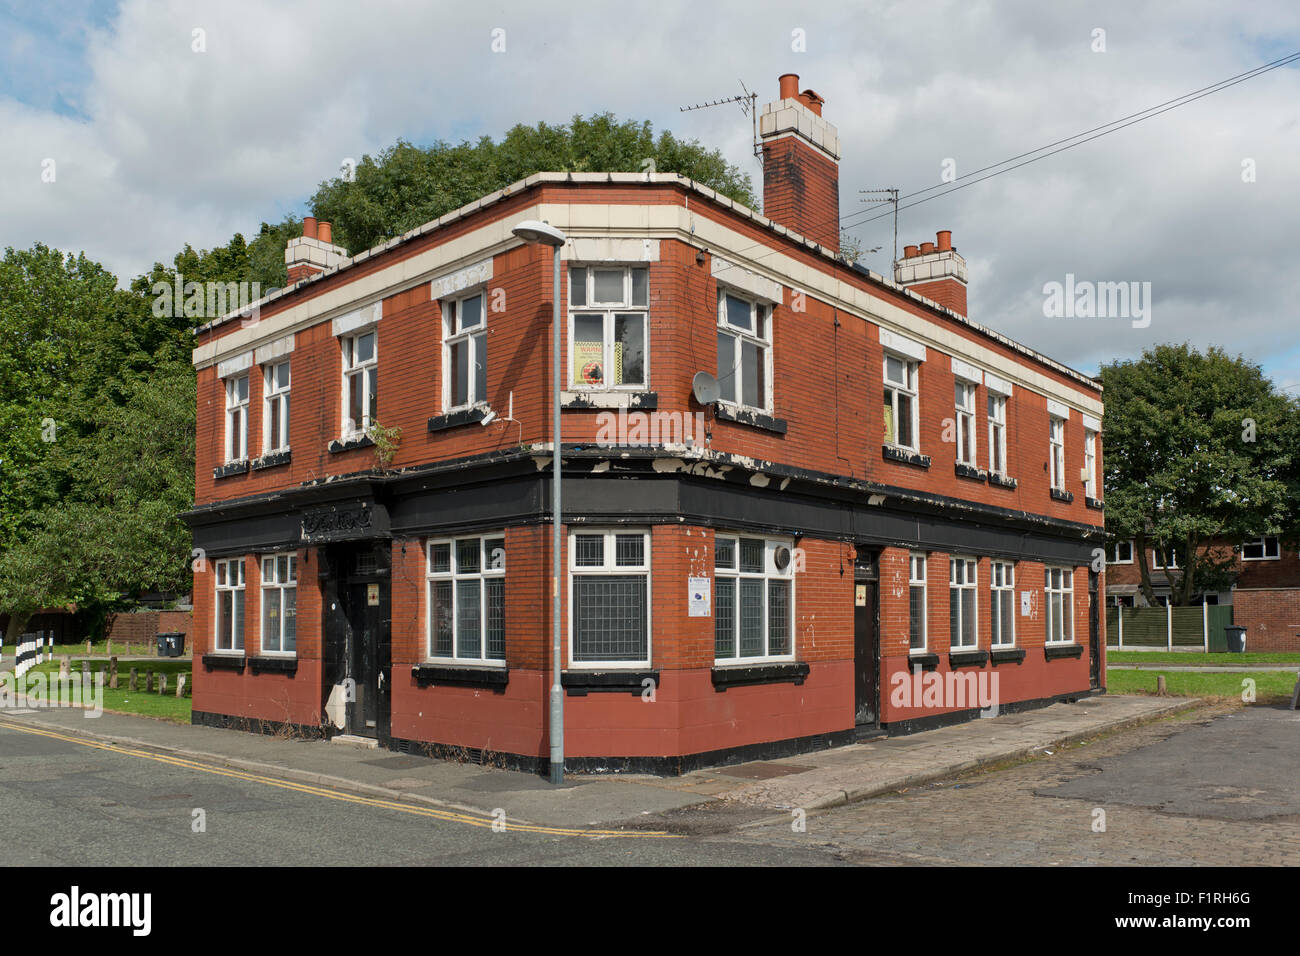 A closed down pub in the Brunswick area of Manchester. - Stock Image